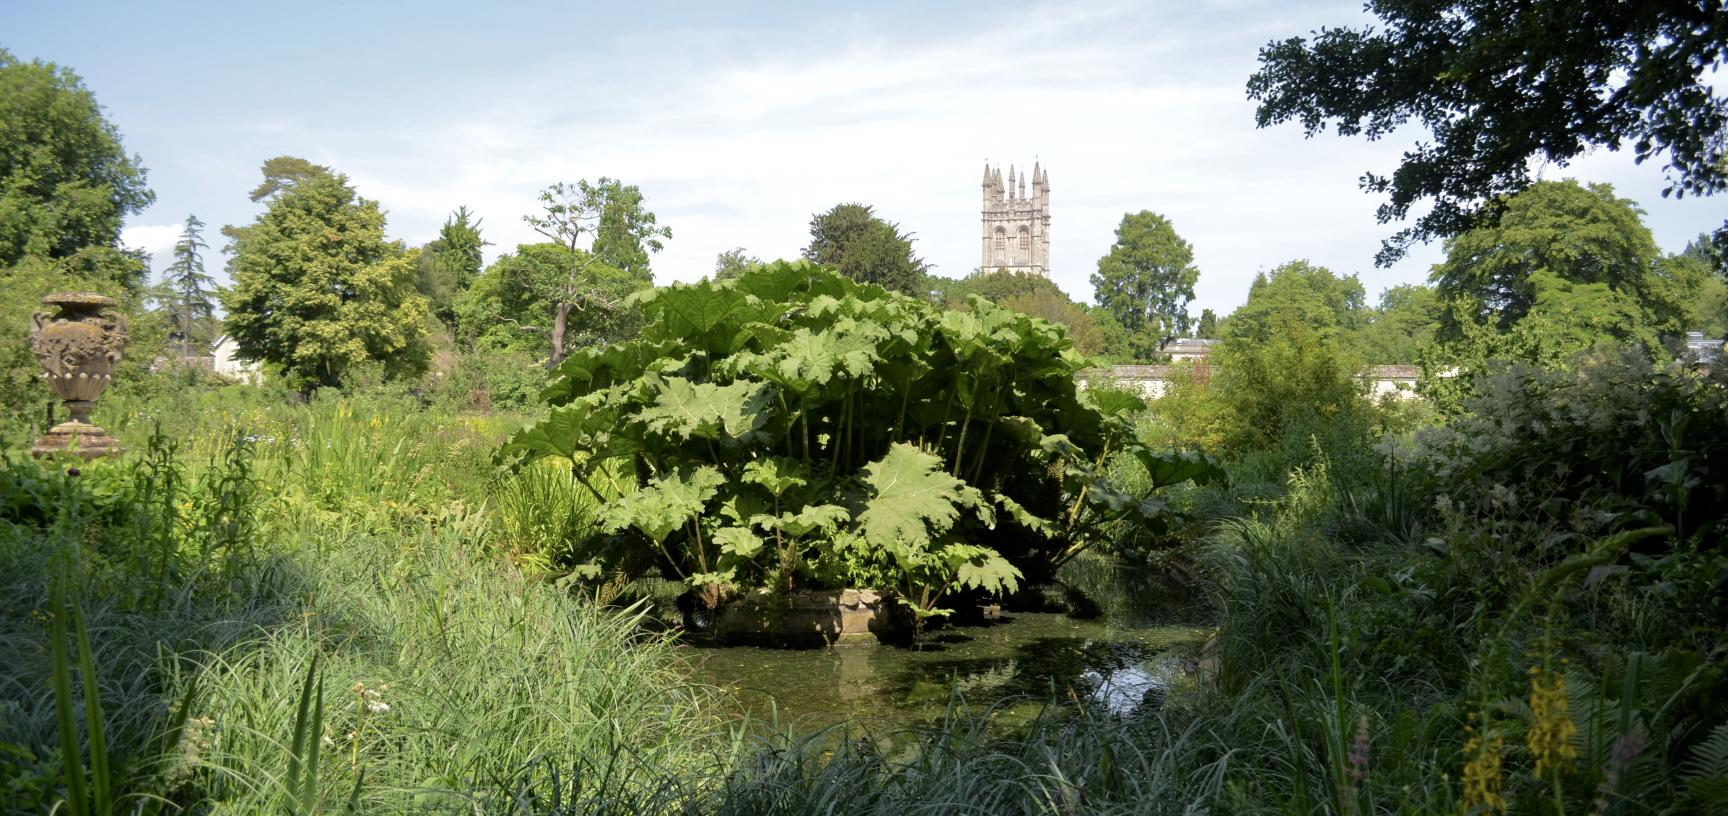 The Bog Garden and Magdalen Tower